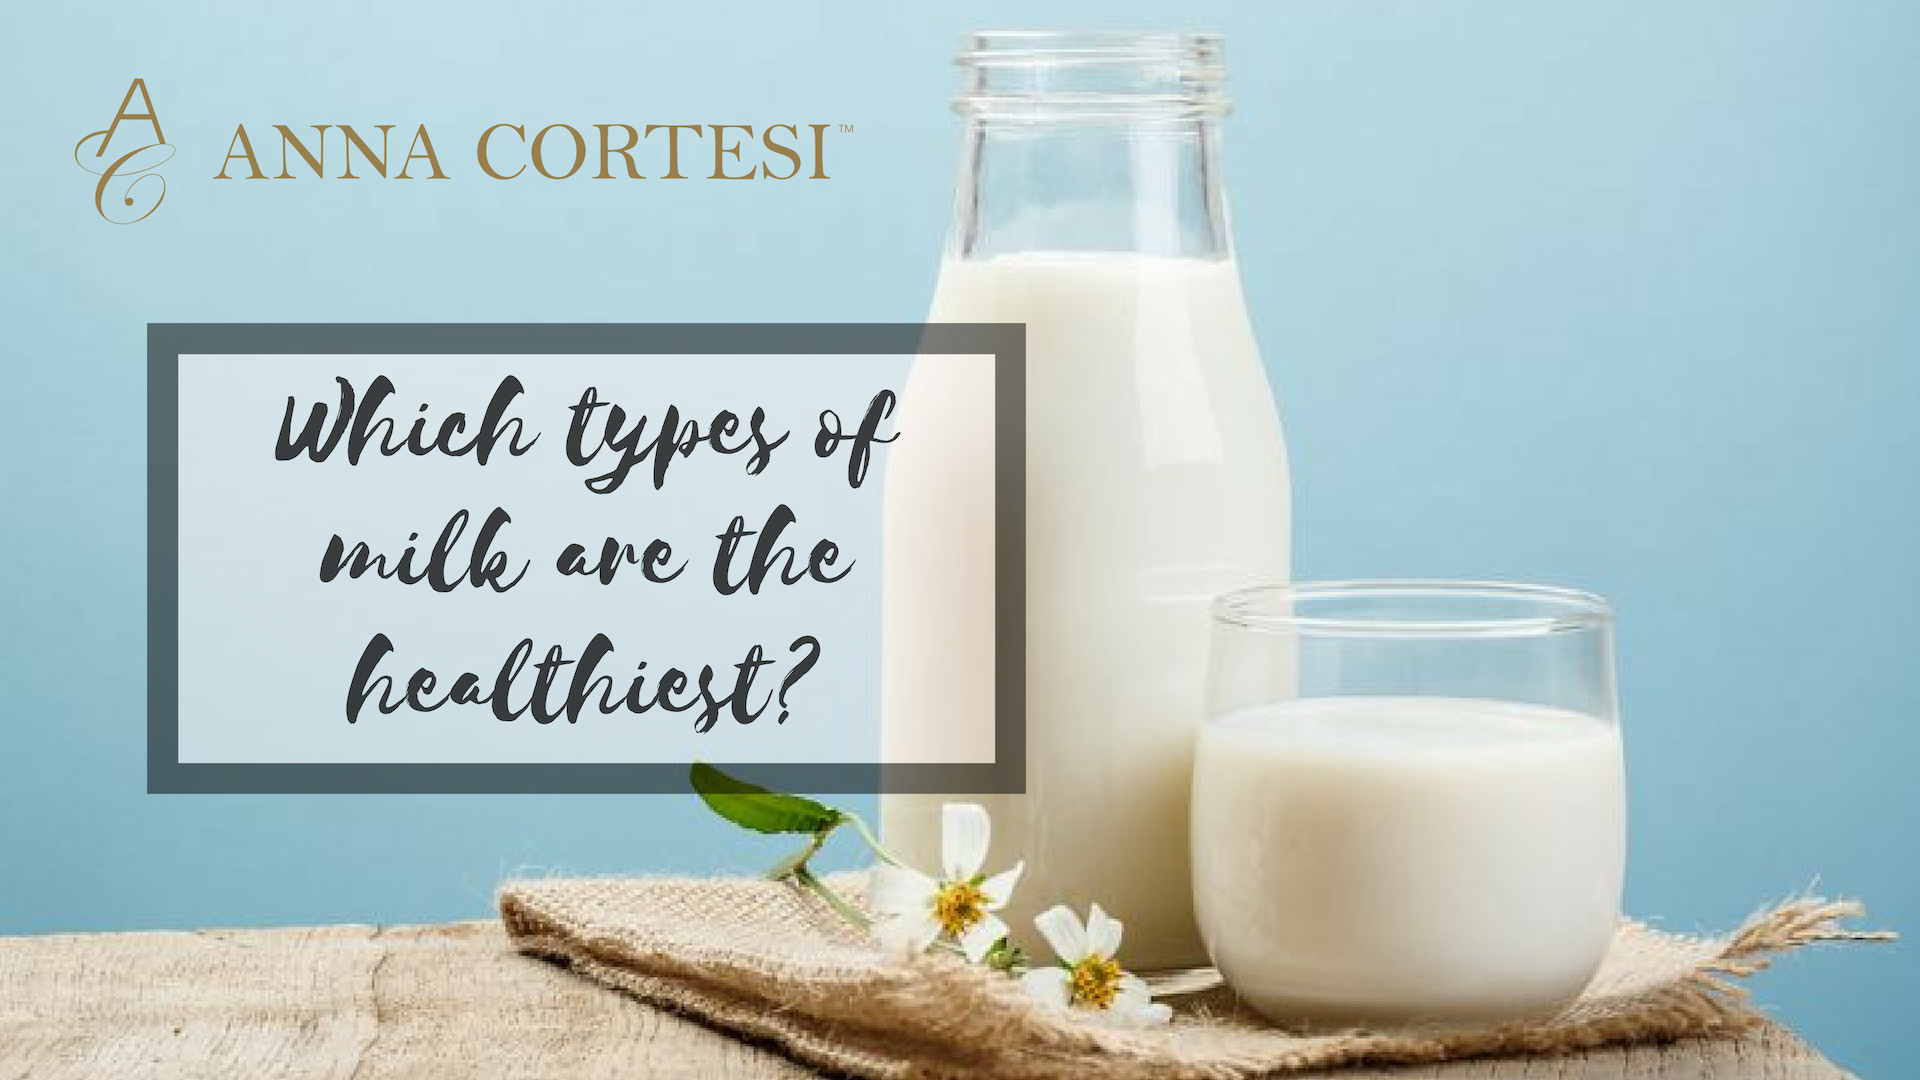 Which types of milk are the healthiest